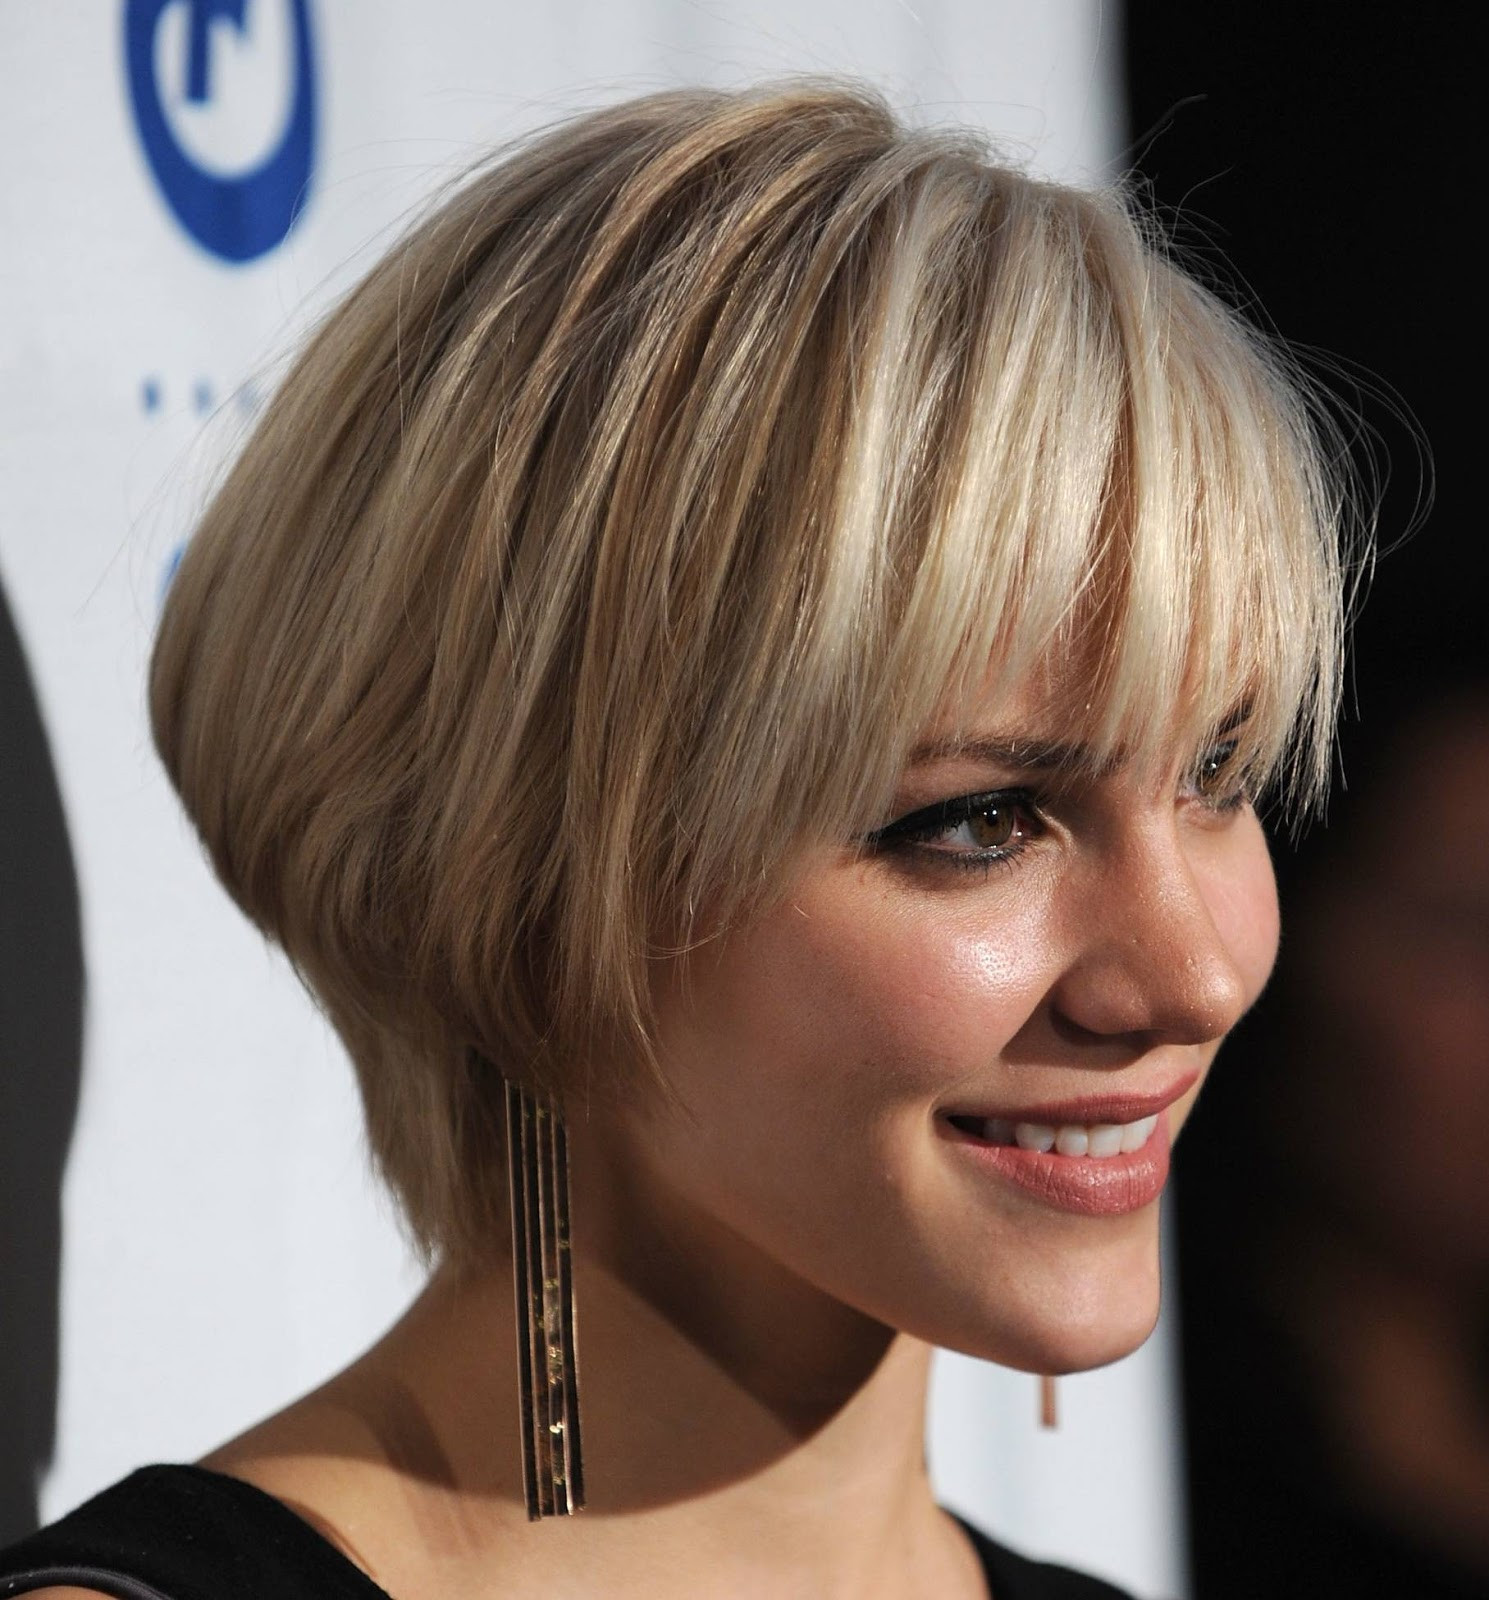 Best ideas about Hairstyles For Bob Cut . Save or Pin Bob Cut Hairstyles 2012 Now.